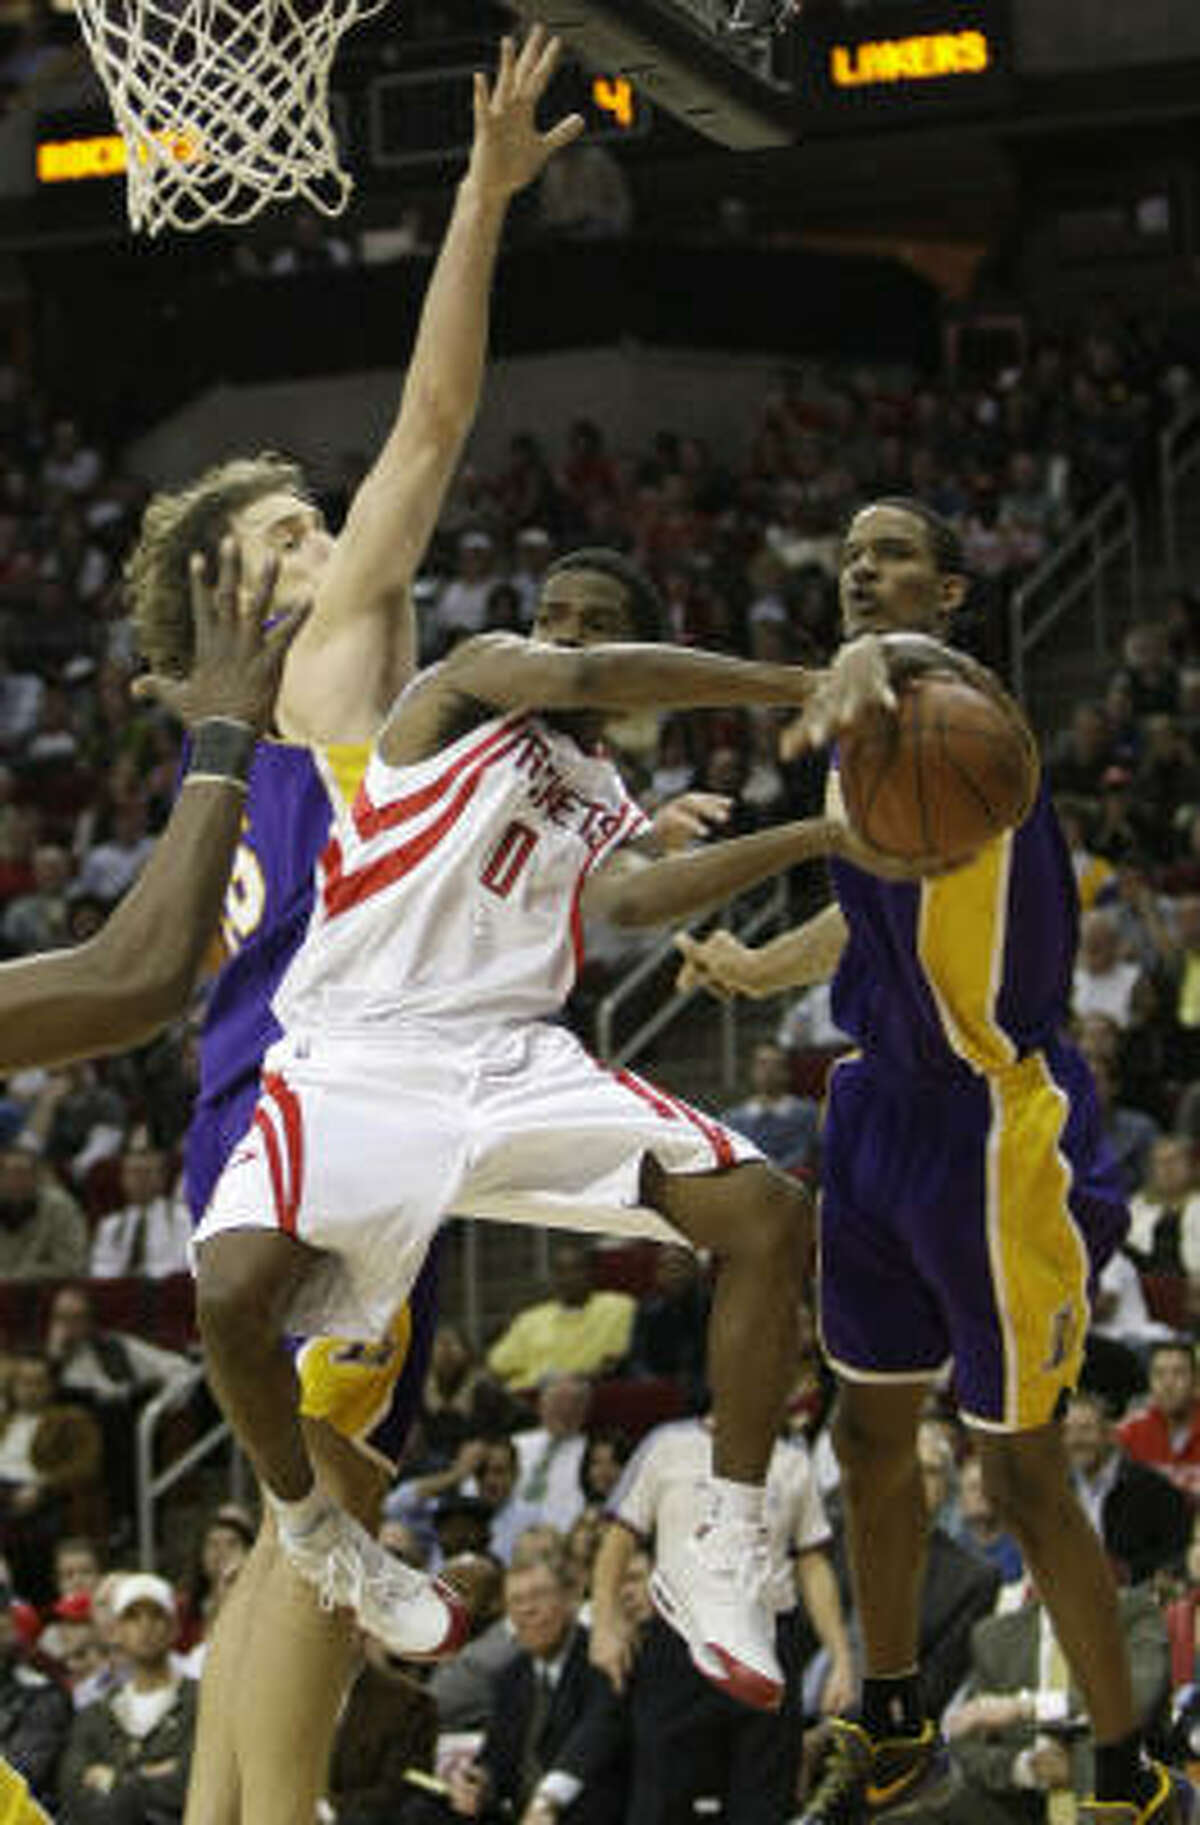 Lakers forward Trevor Ariza, right, knocks the ball away from Rockets guard Aaron Brooks as he tries to drive the lane against Lakers forward Pau Gasol in the second half.